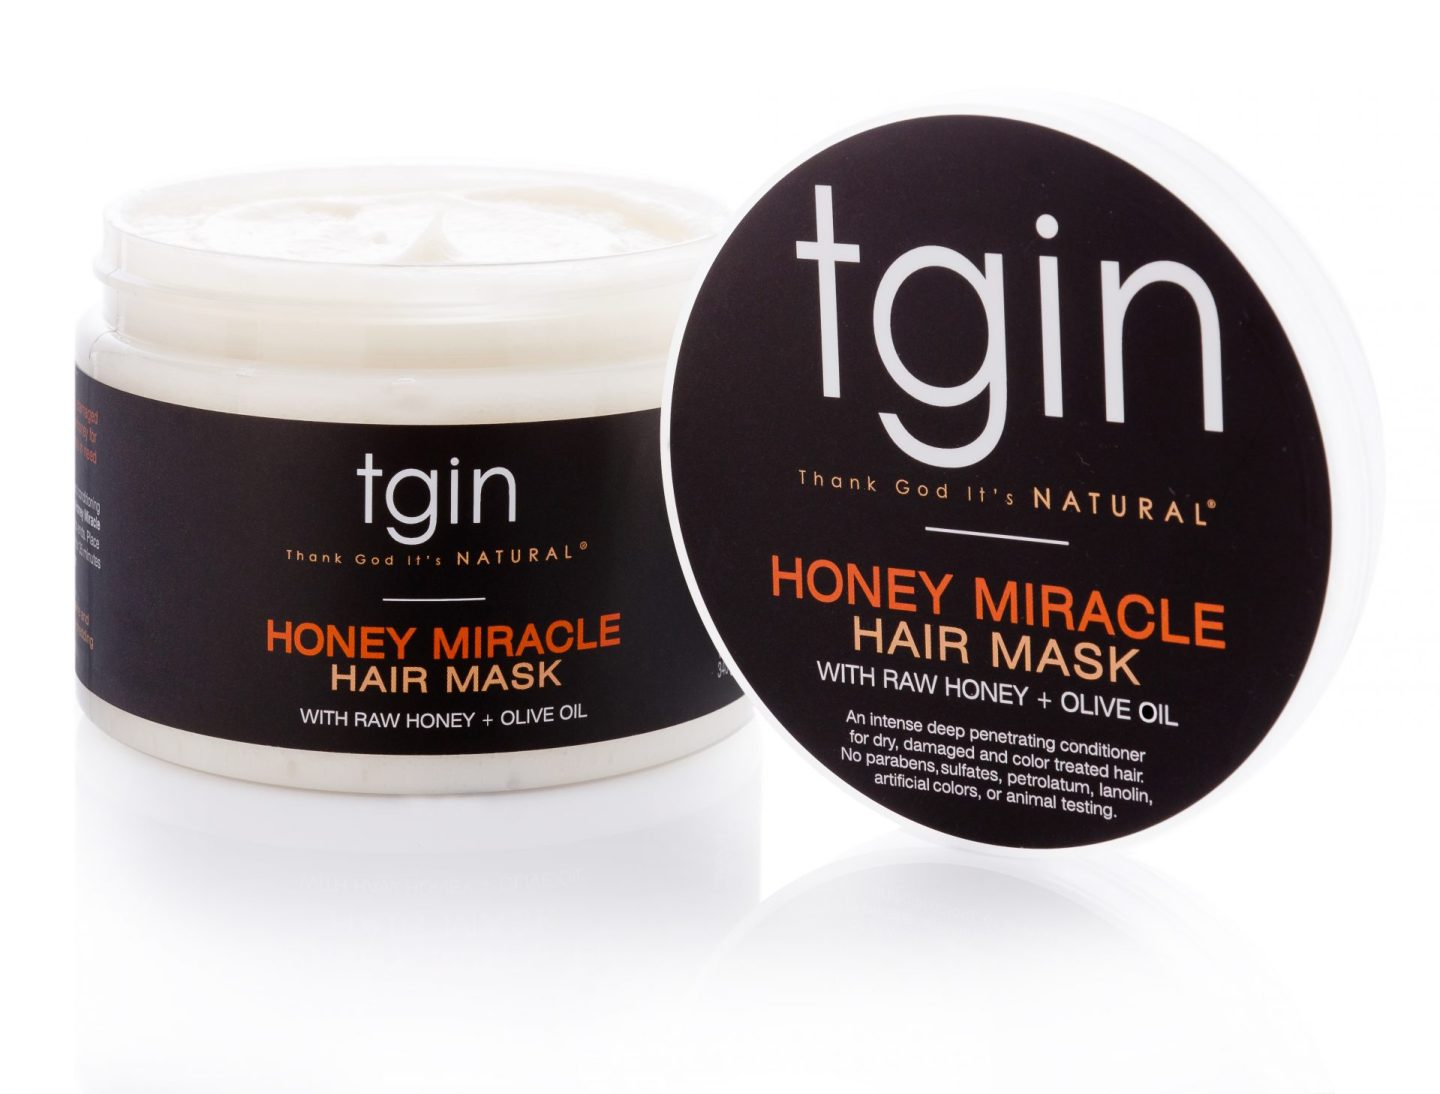 TGIN Honey Miracle Hair Mask with Raw Honey + Olive Oil Deep Conditioner